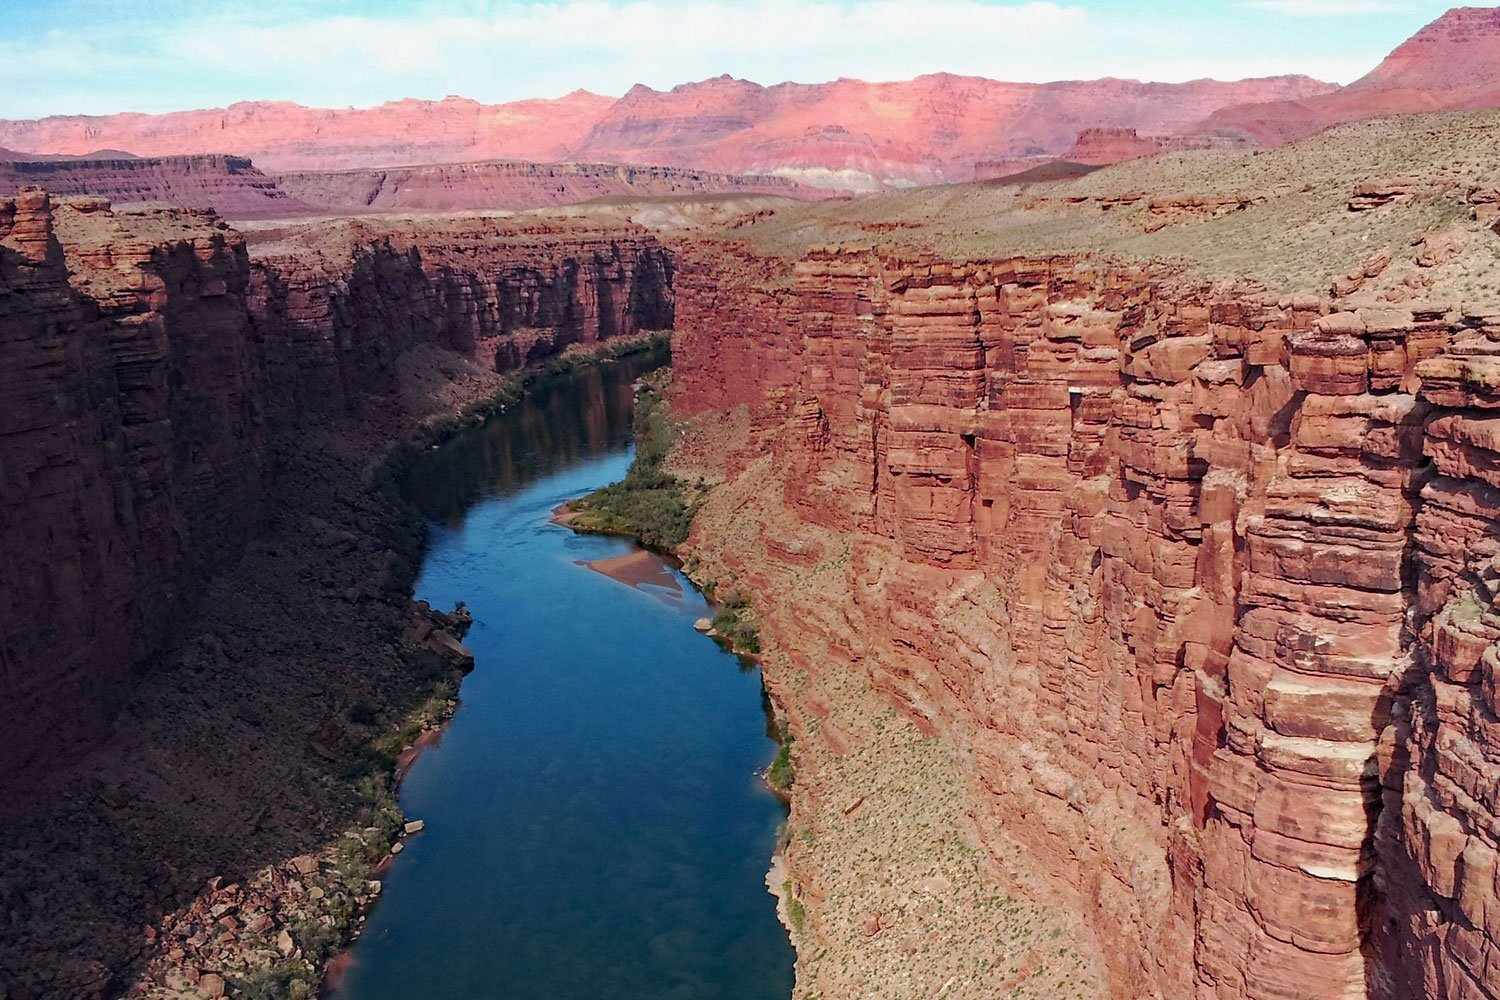 Canyon road trip takes you to Marble Canyon, Arizona